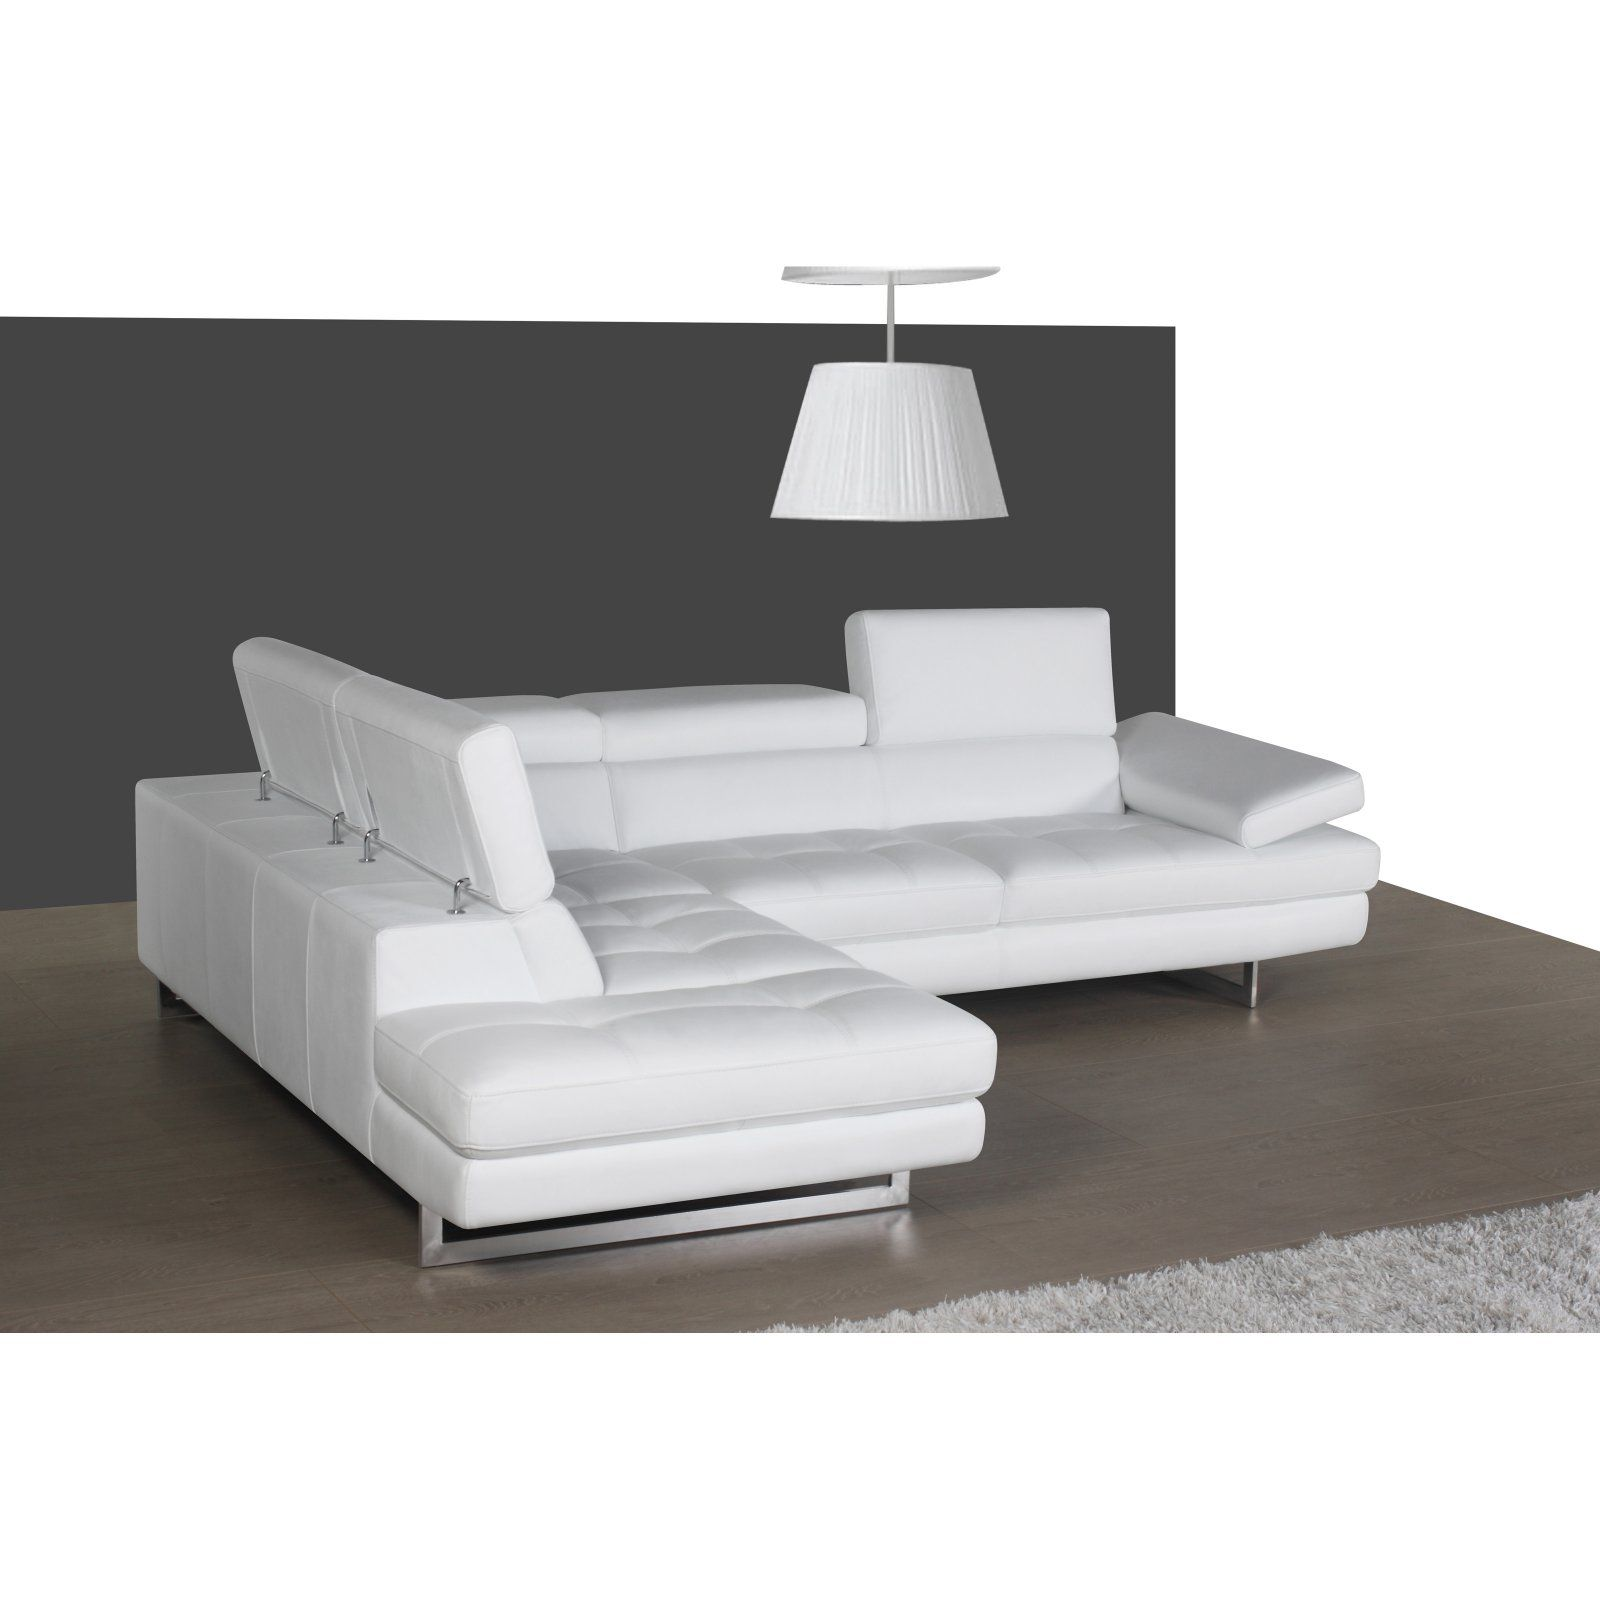 J M Furniture A761 Left Facing Chaise Sectional Sofa White Leather Sectional Sectional Sofa Furniture